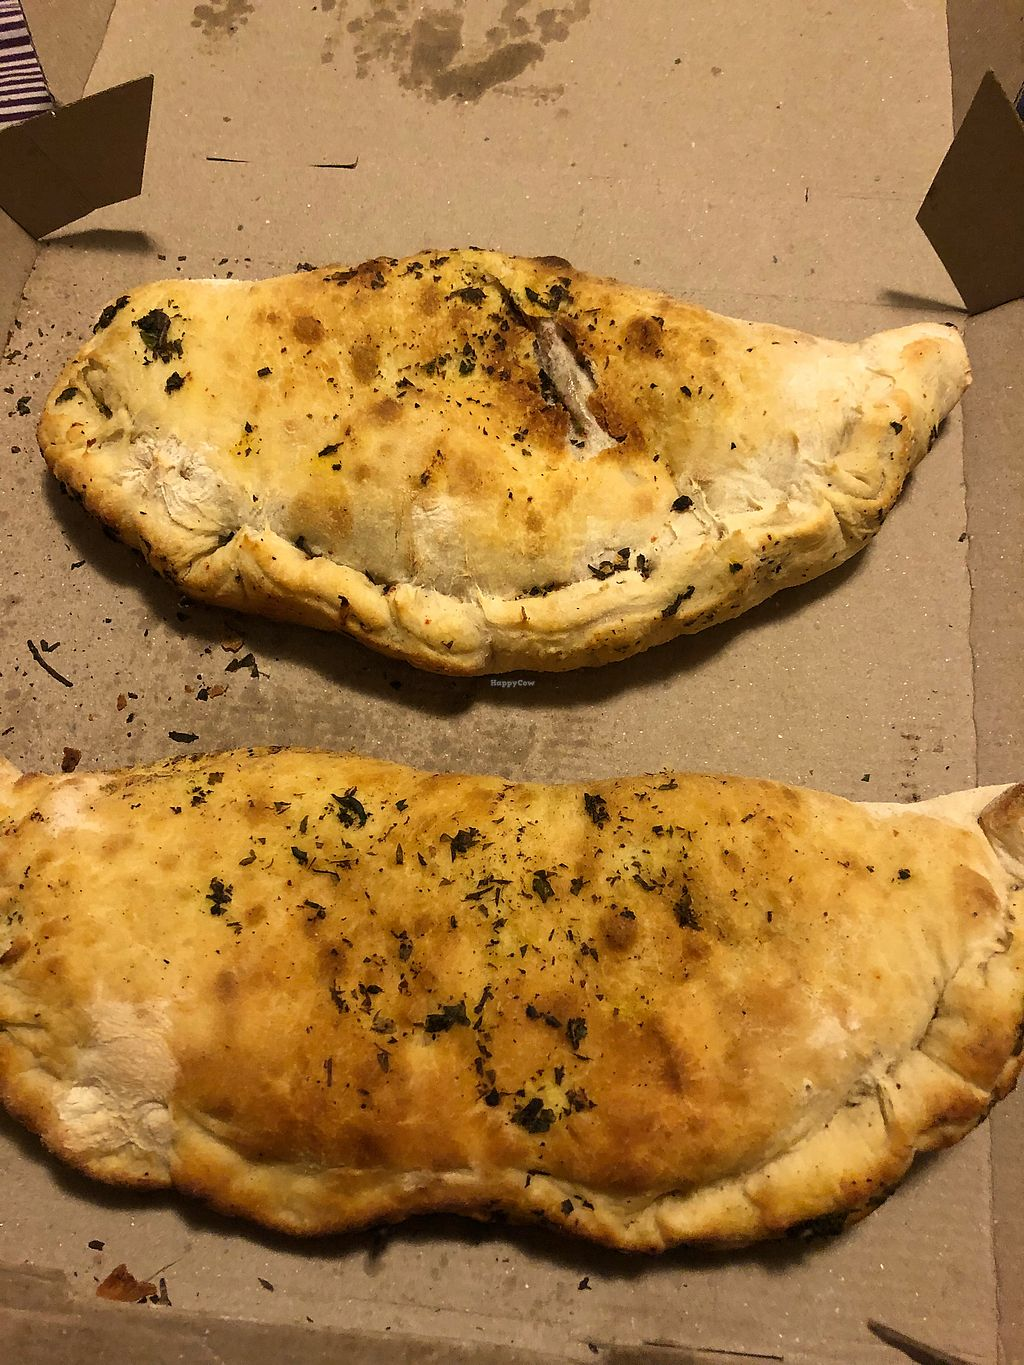 "Photo of Veggino's Pizza  by <a href=""/members/profile/LaylaLm"">LaylaLm</a> <br/>Calzone  <br/> March 4, 2018  - <a href='/contact/abuse/image/78756/366699'>Report</a>"